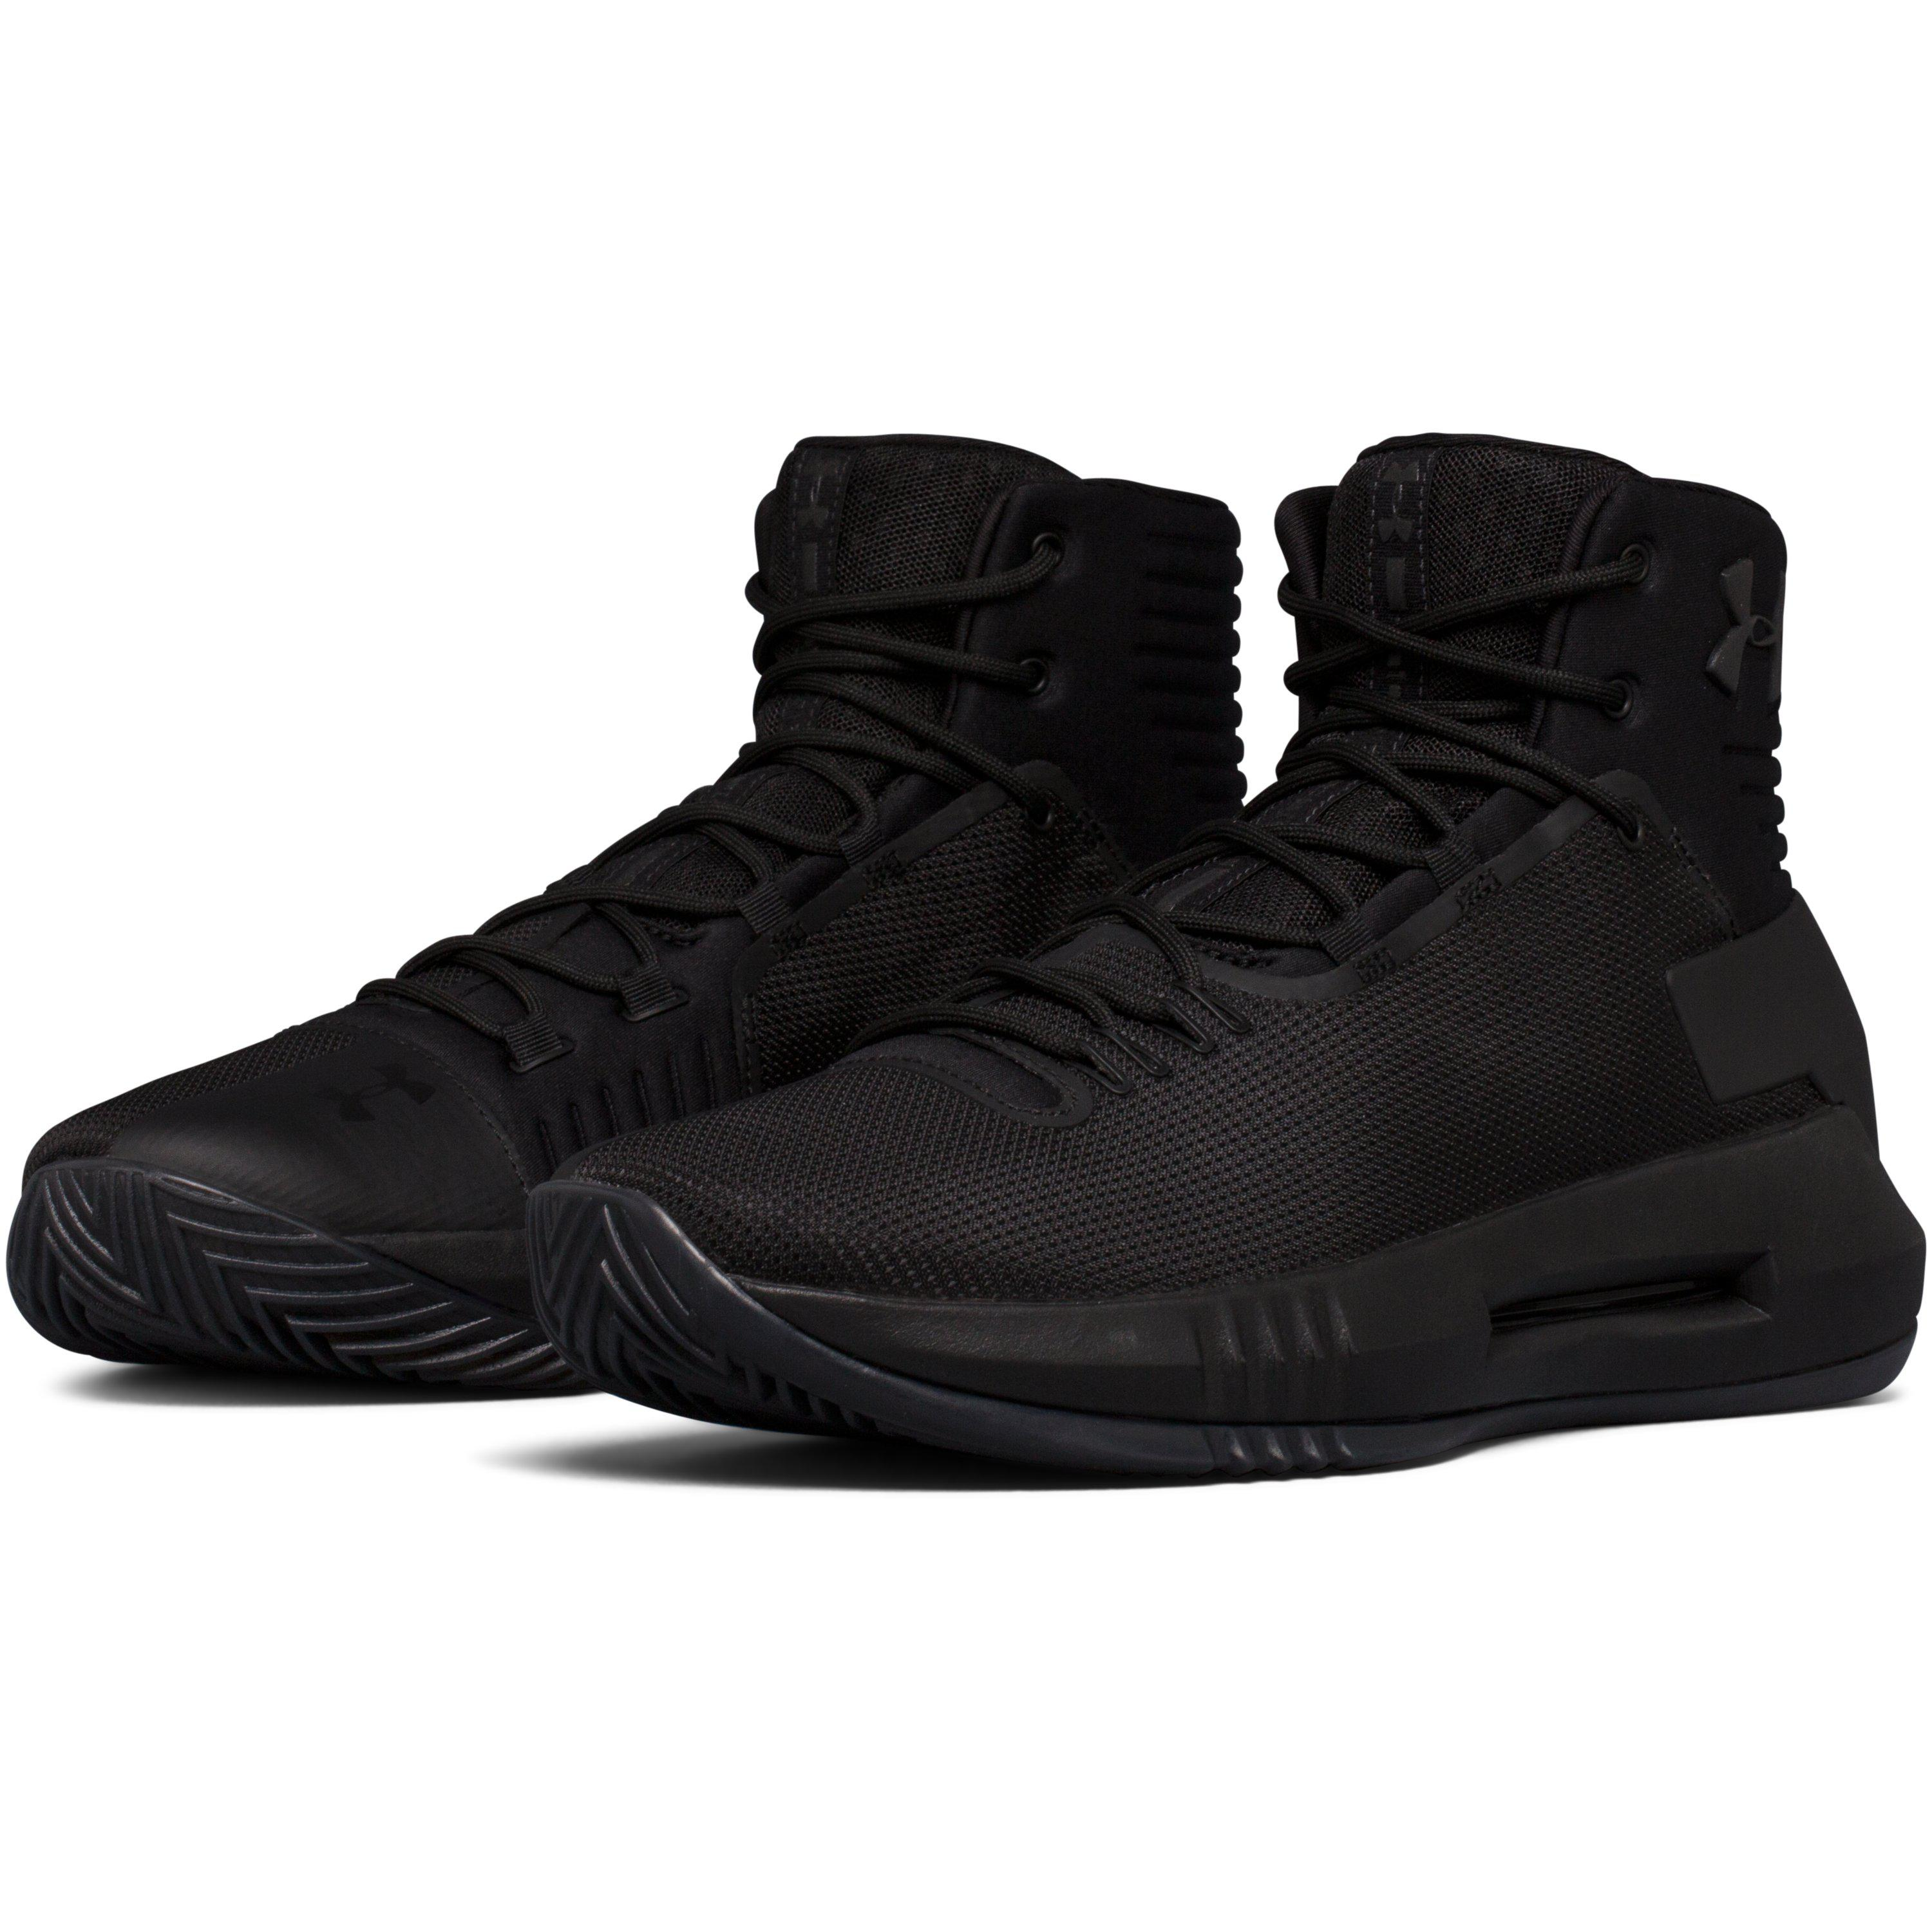 15eb9780d Under Armour Men's Ua Drive 4 Basketball Shoes in Black for Men - Lyst